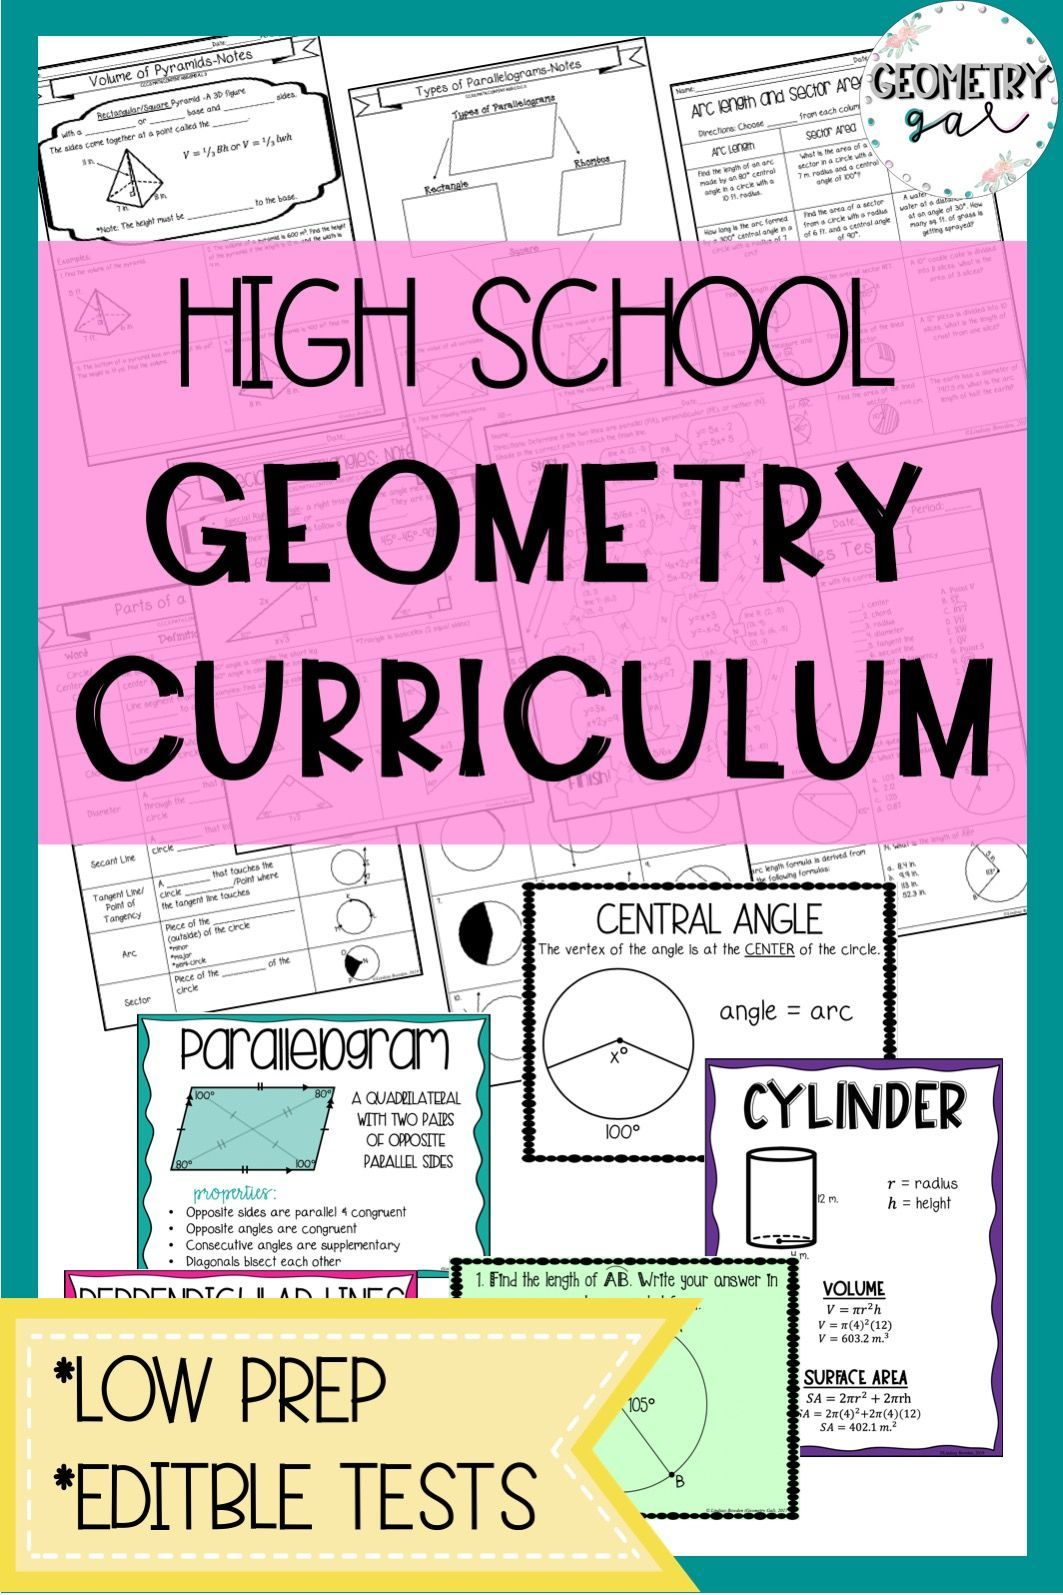 Geometry Curriculum | Secondary Math Resources - Grades 7-12